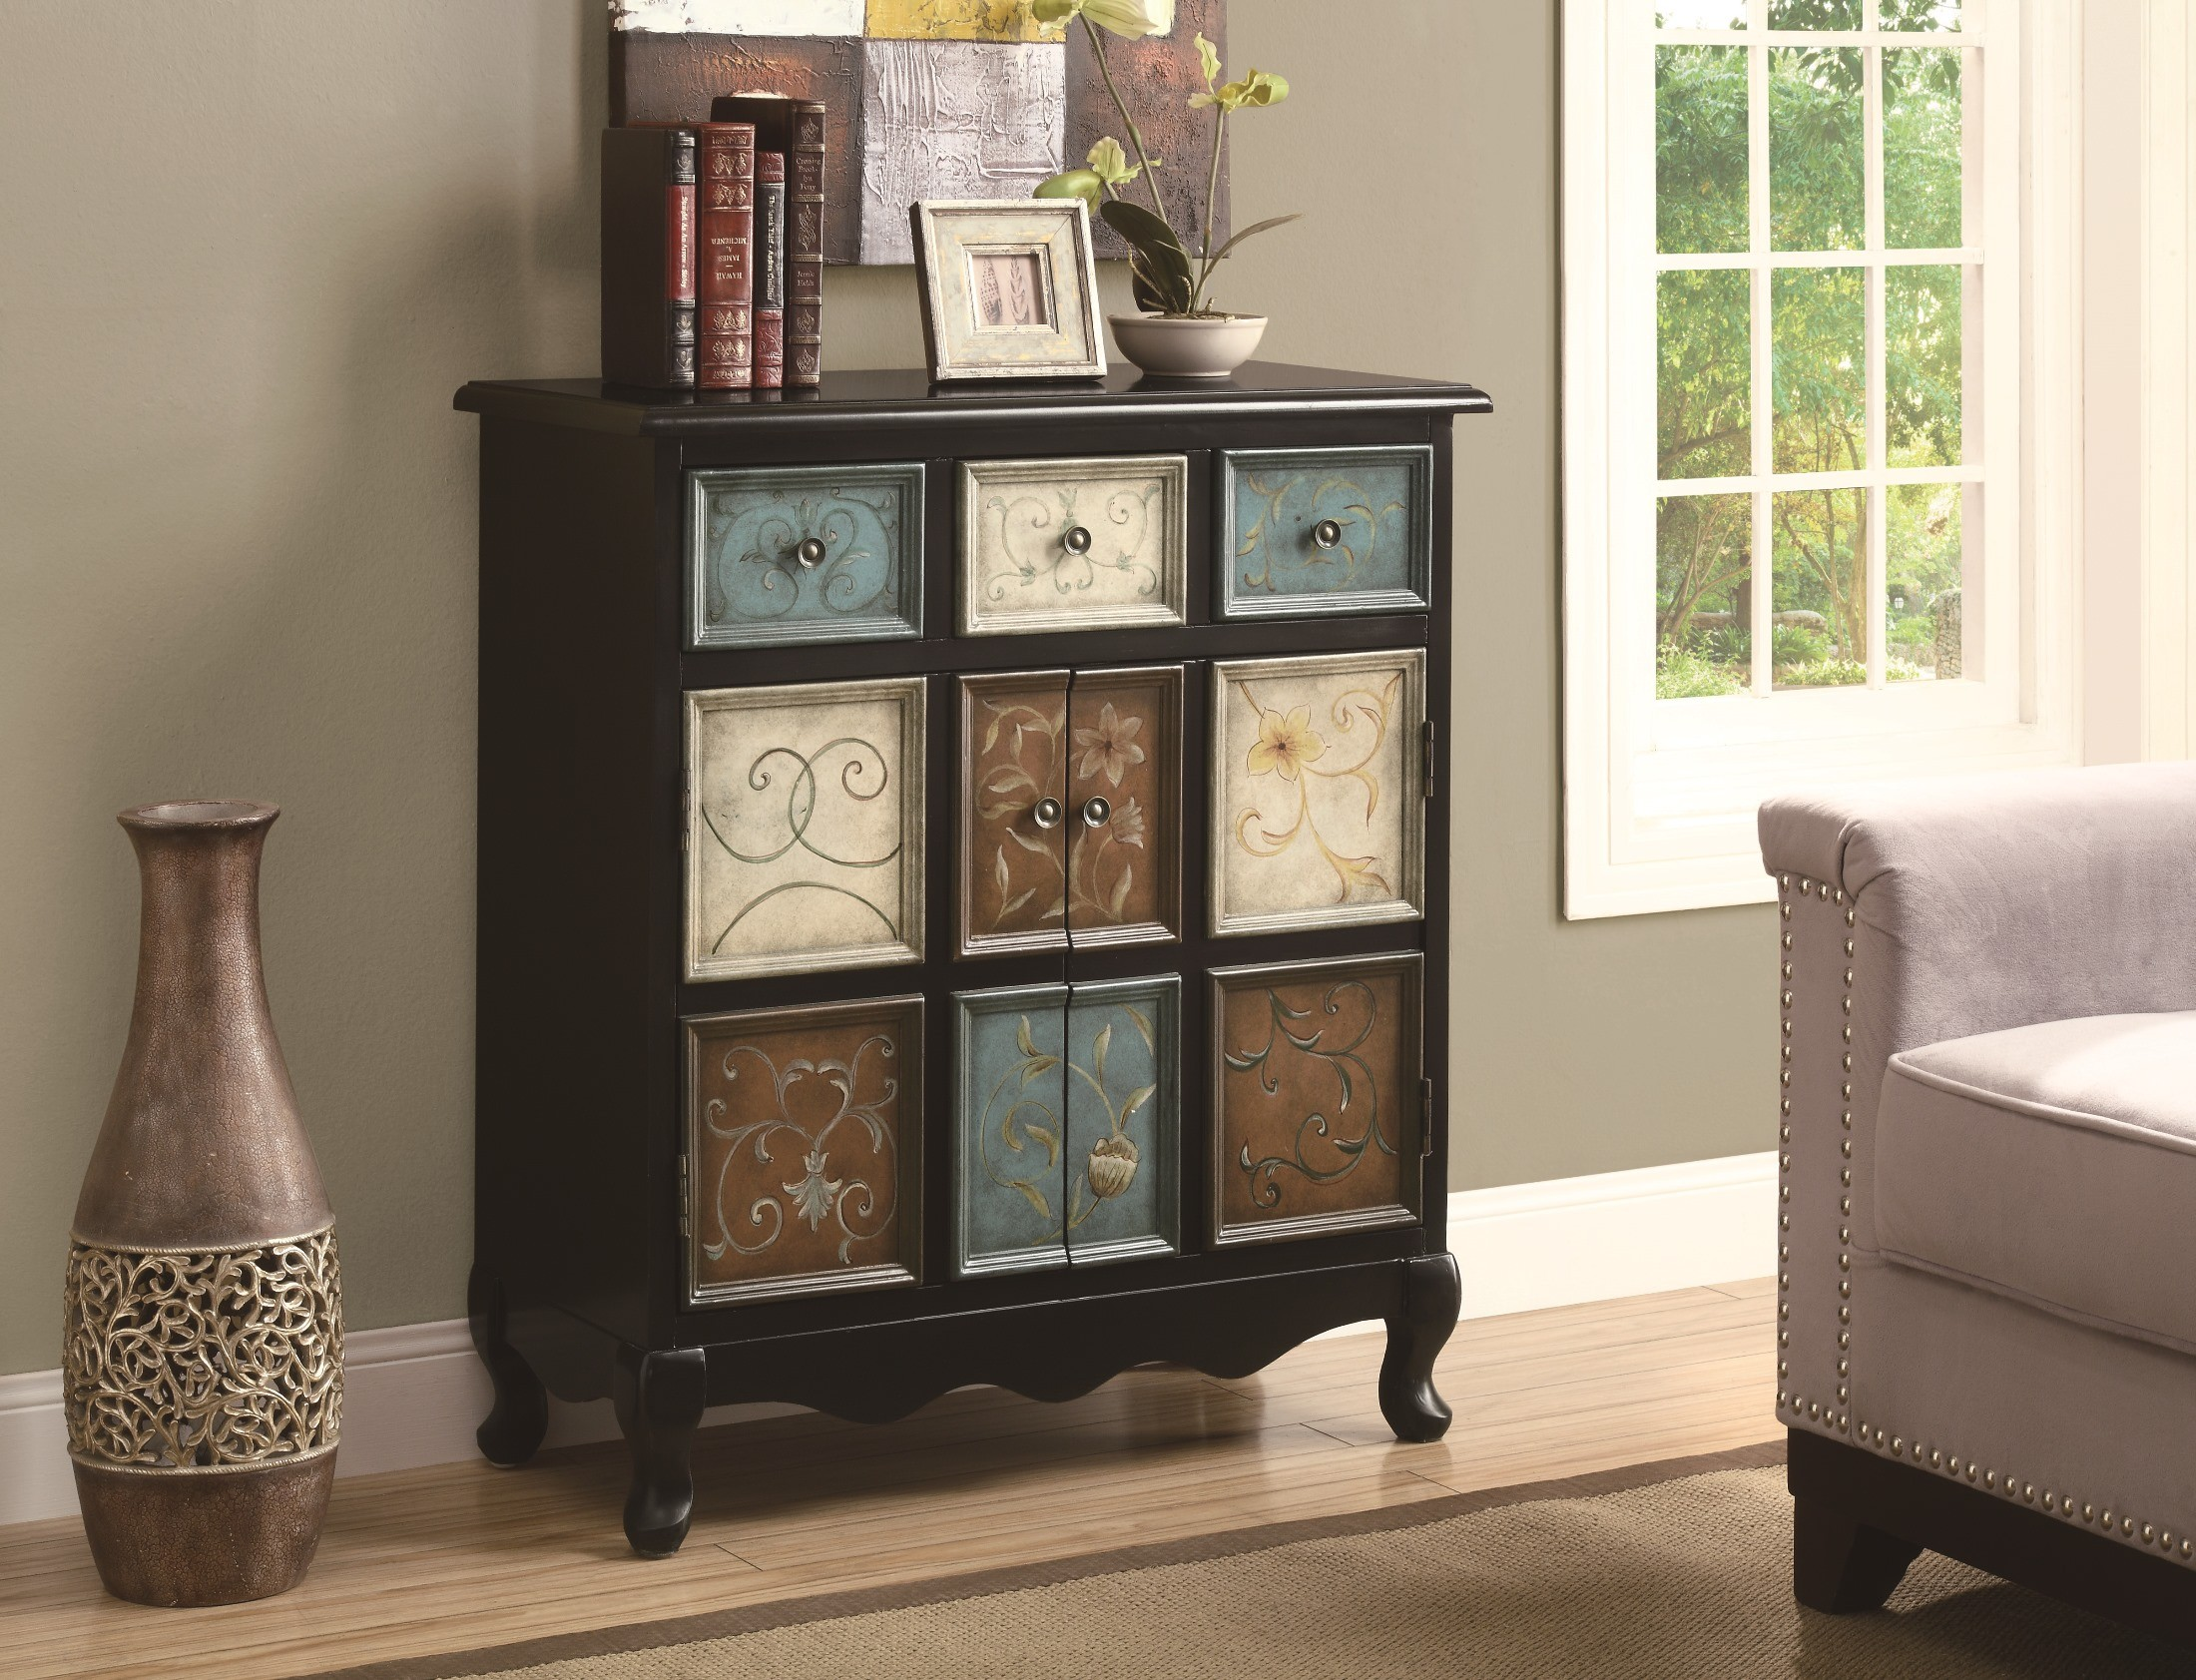 3893 Distressed Black / Multi Color Apothecary Bombay Chest